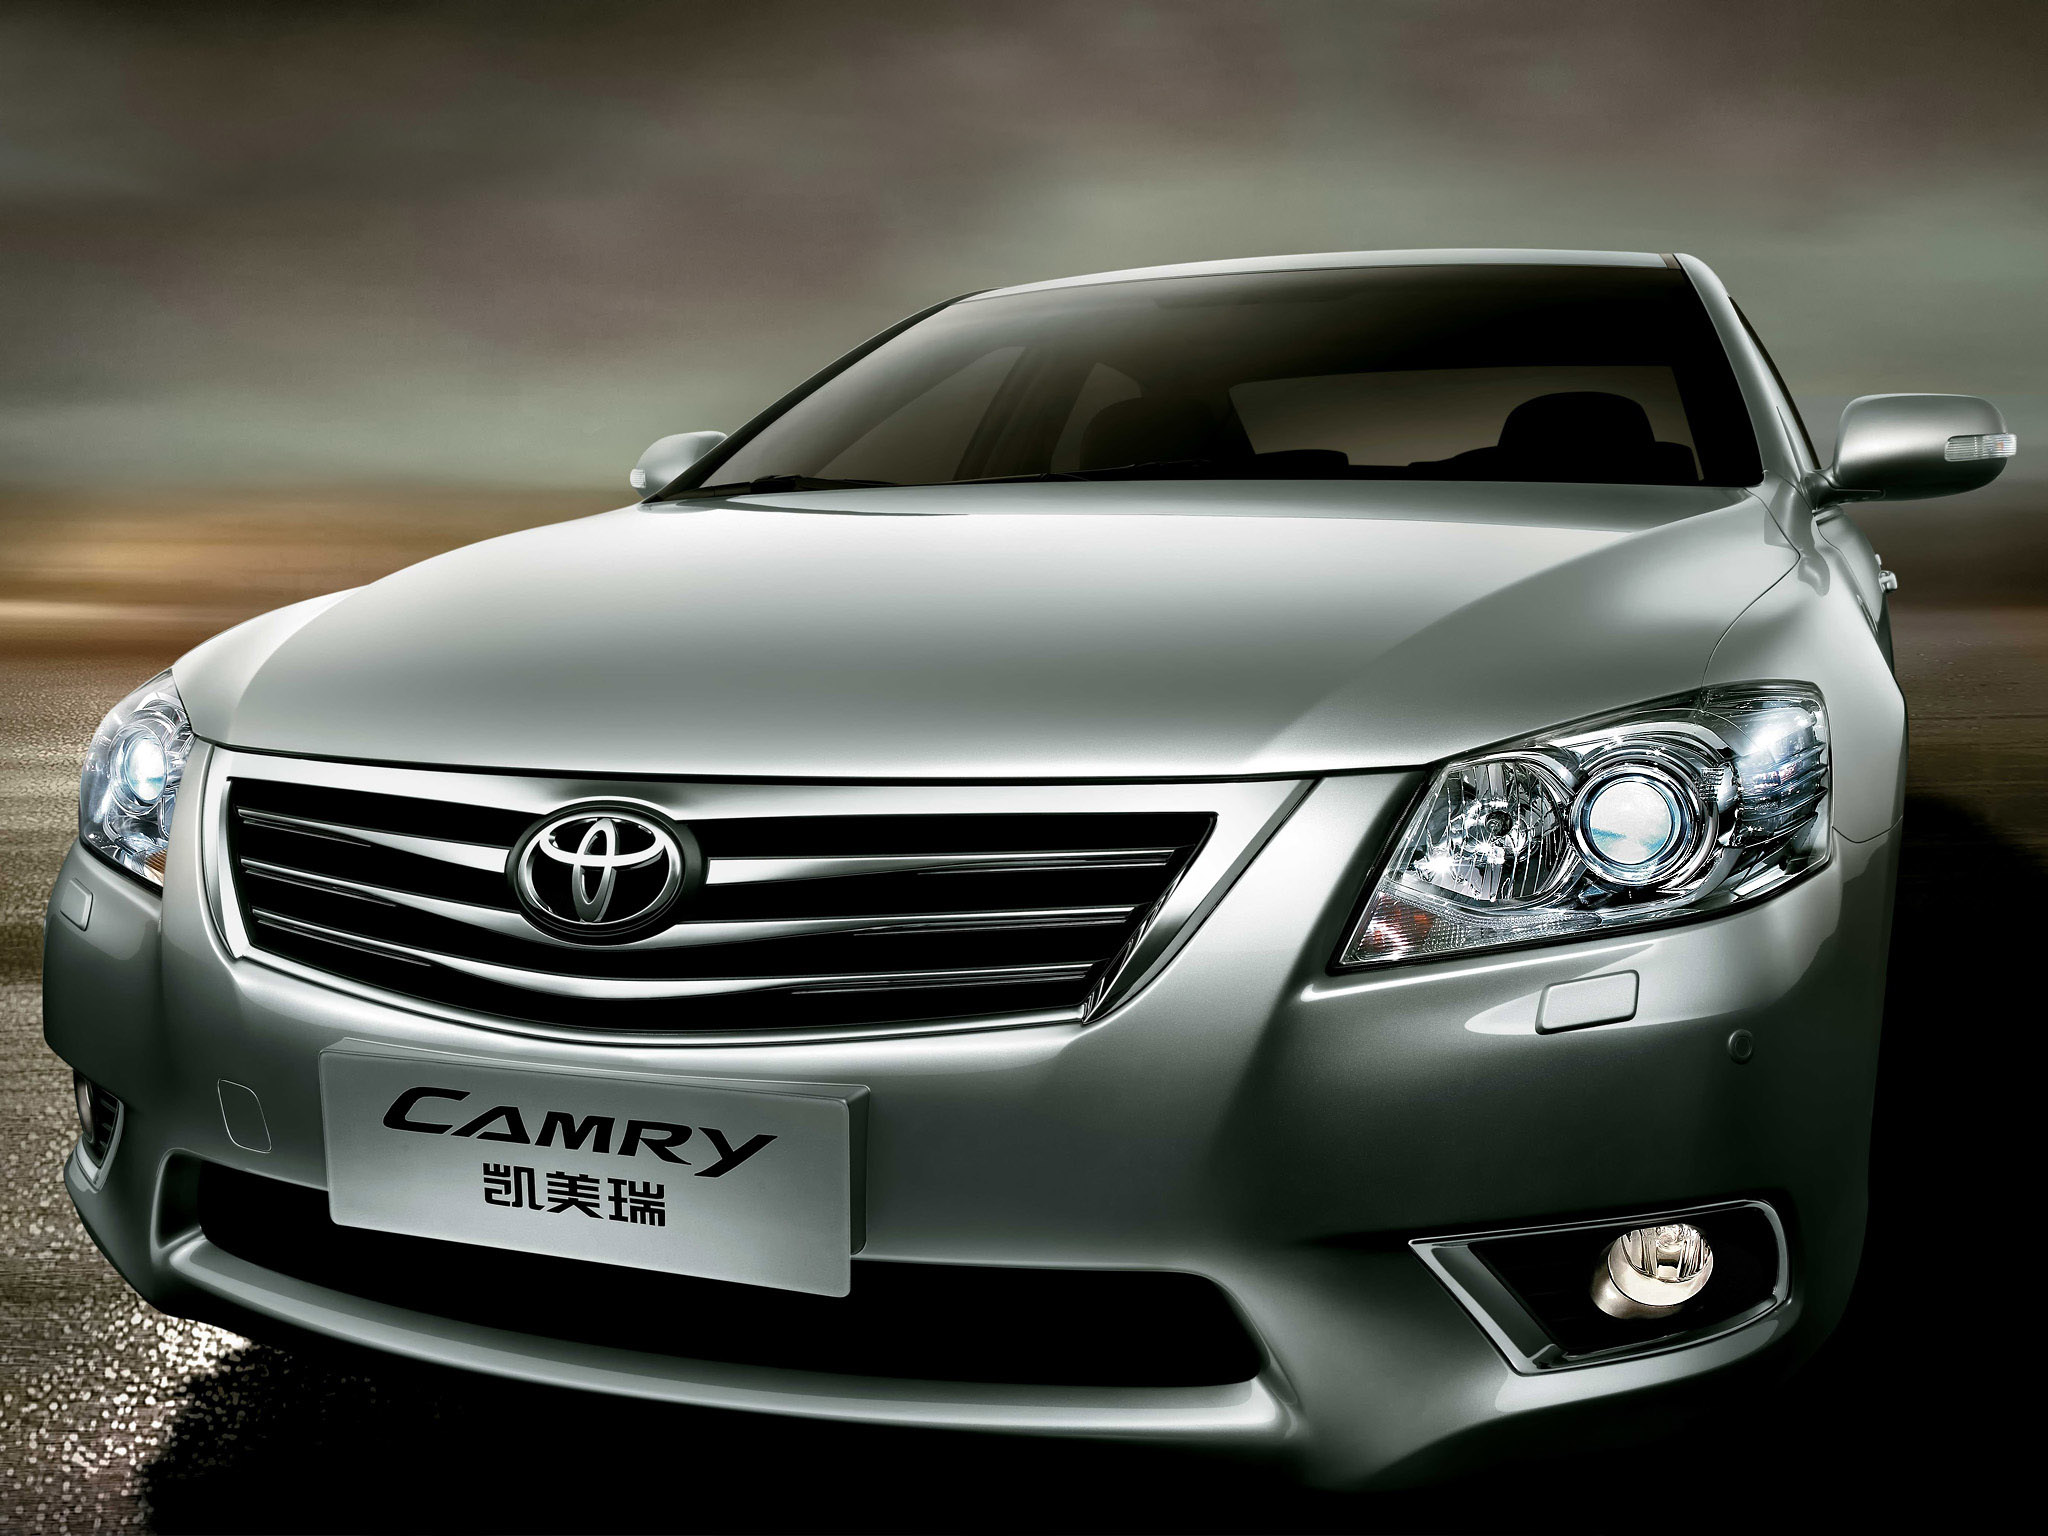 toyota camry china 2006 toyota camry china 2006 photo 06 car in pictures car photo gallery. Black Bedroom Furniture Sets. Home Design Ideas